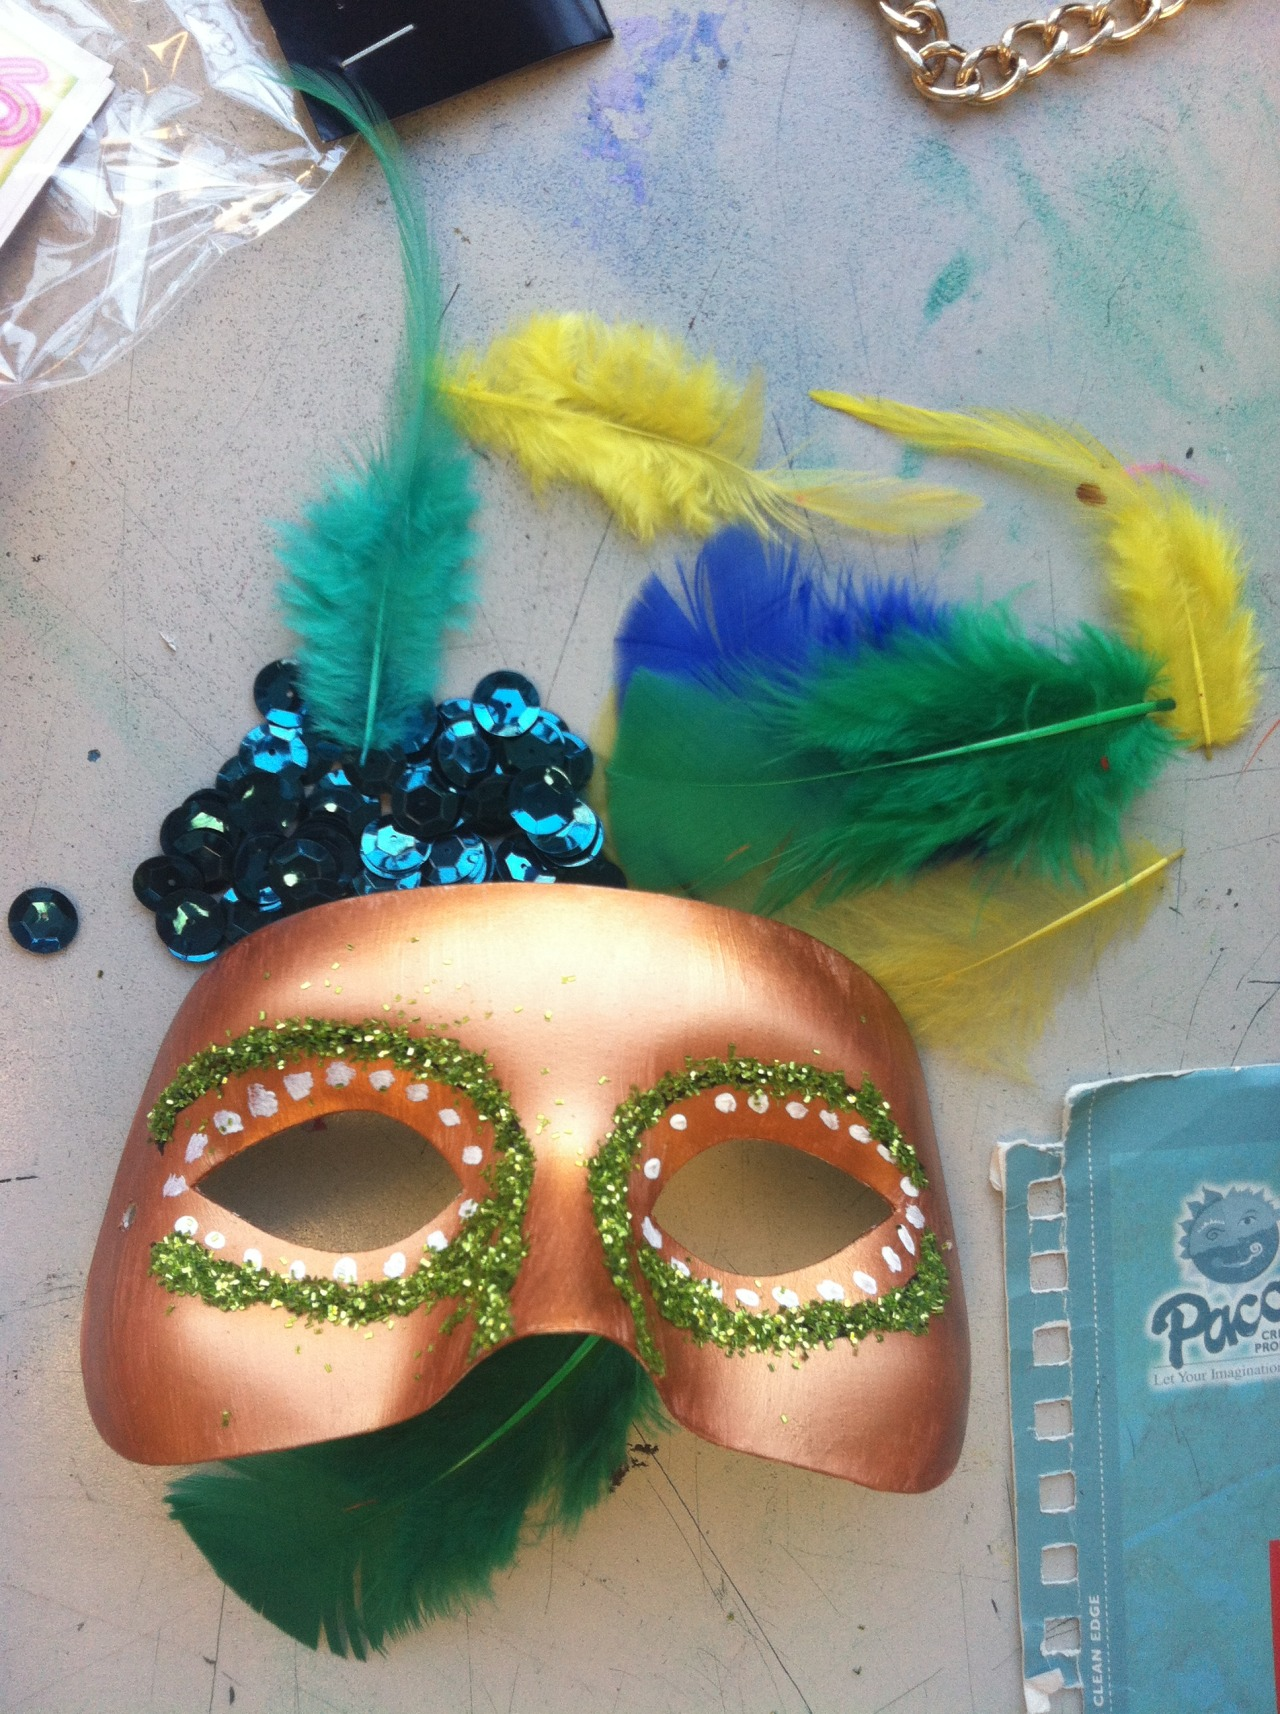 Collaborating with Performing Arts and Making Masks!This Spring, the Performing Arts Program at CHS is putting on Phantom of the Opera, which…View Post